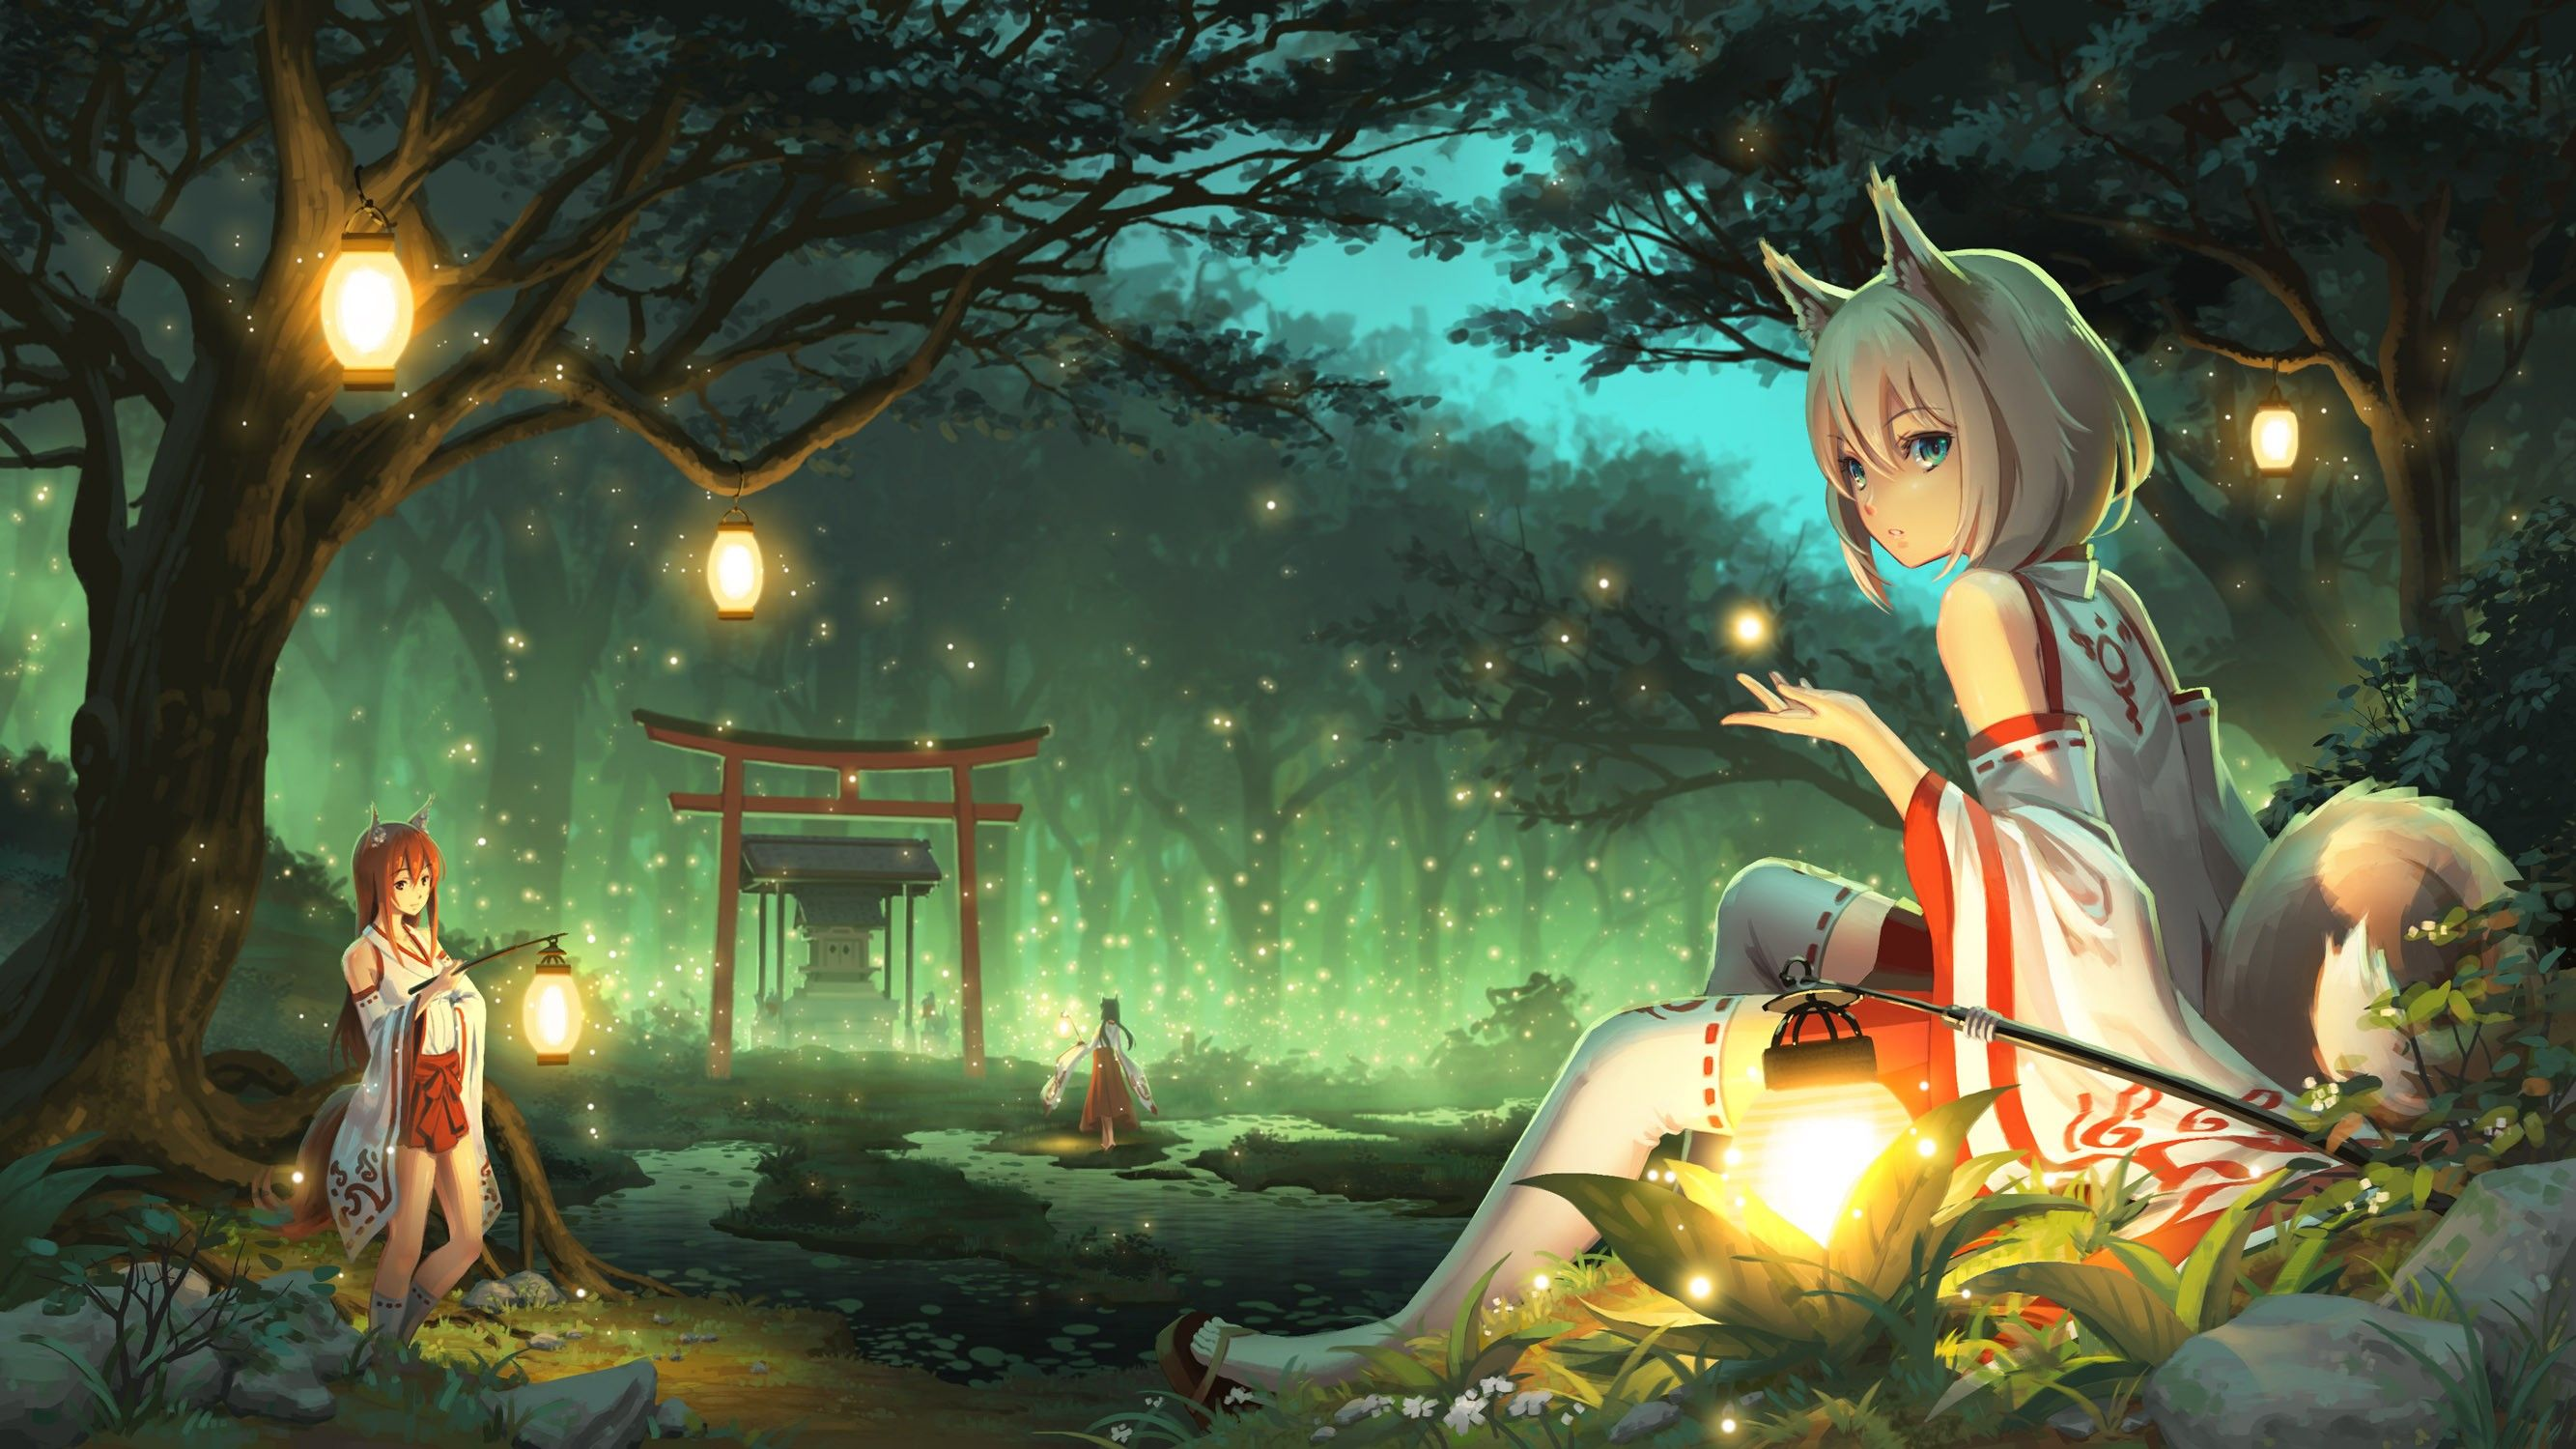 Image result for steampunk anime girl with white hair